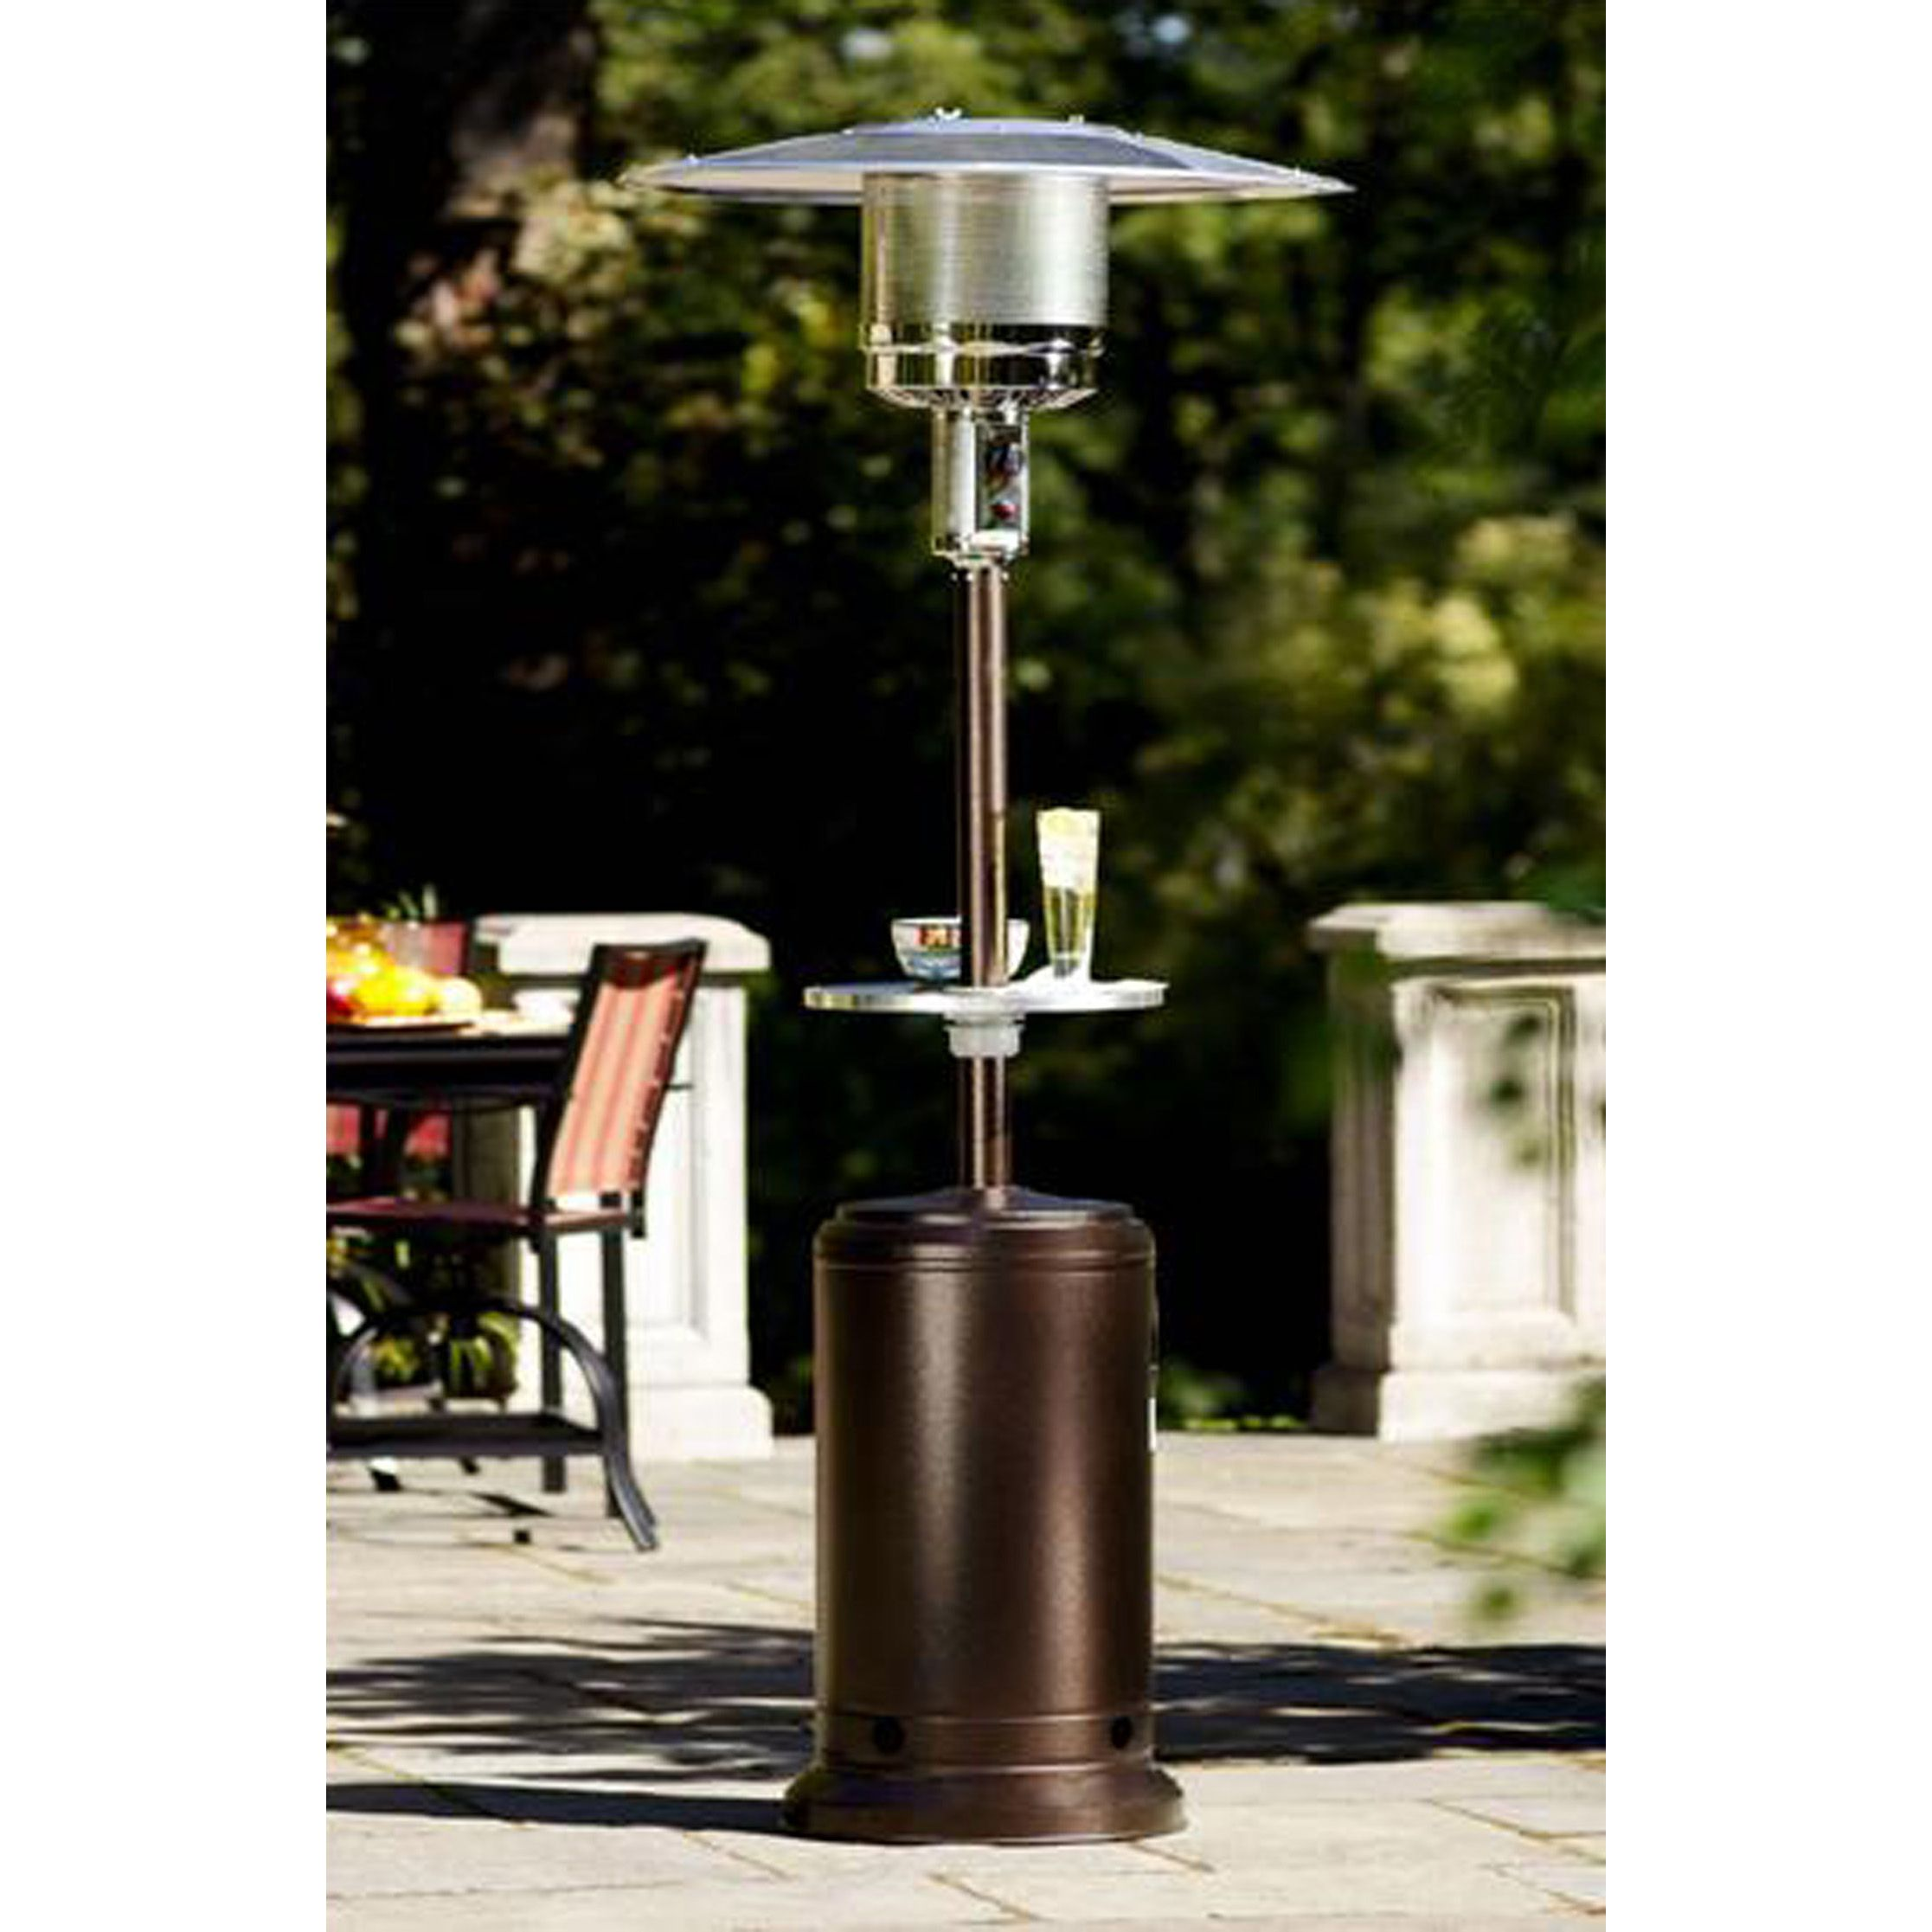 Pin by Patioheaterz on Patio Heaters Patio heater